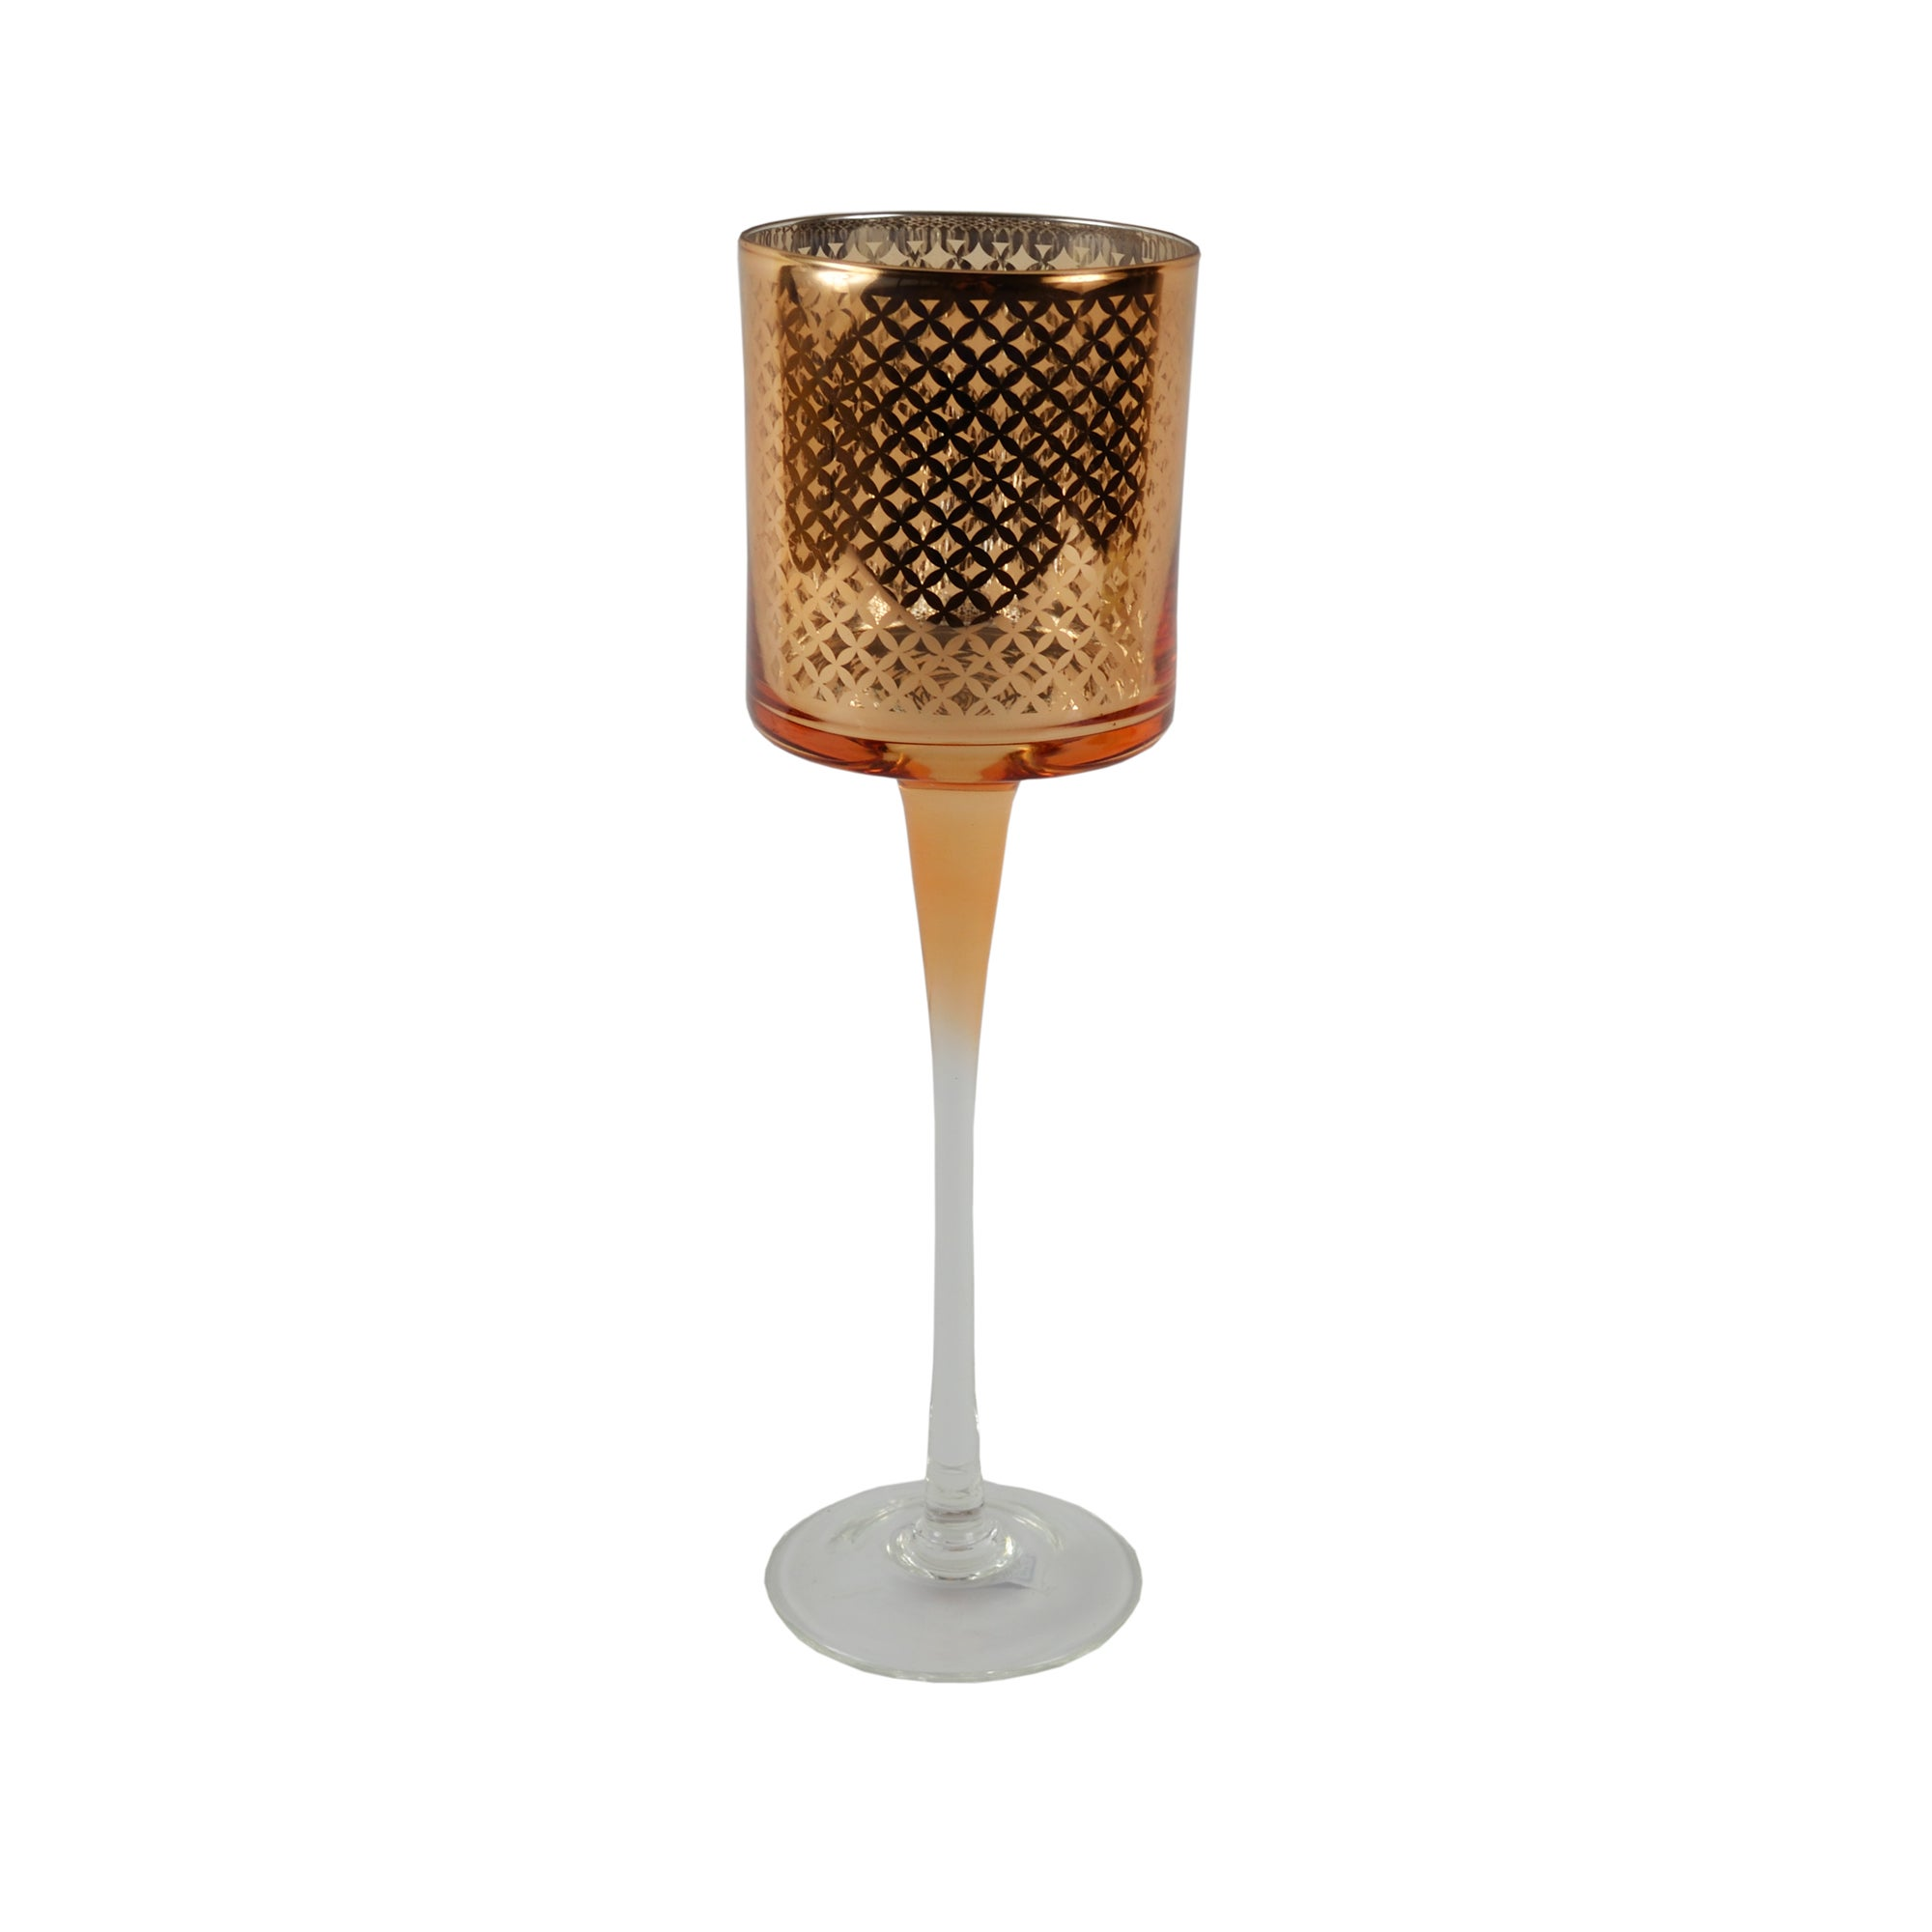 Burnt Sienna Collection Copper Goblet